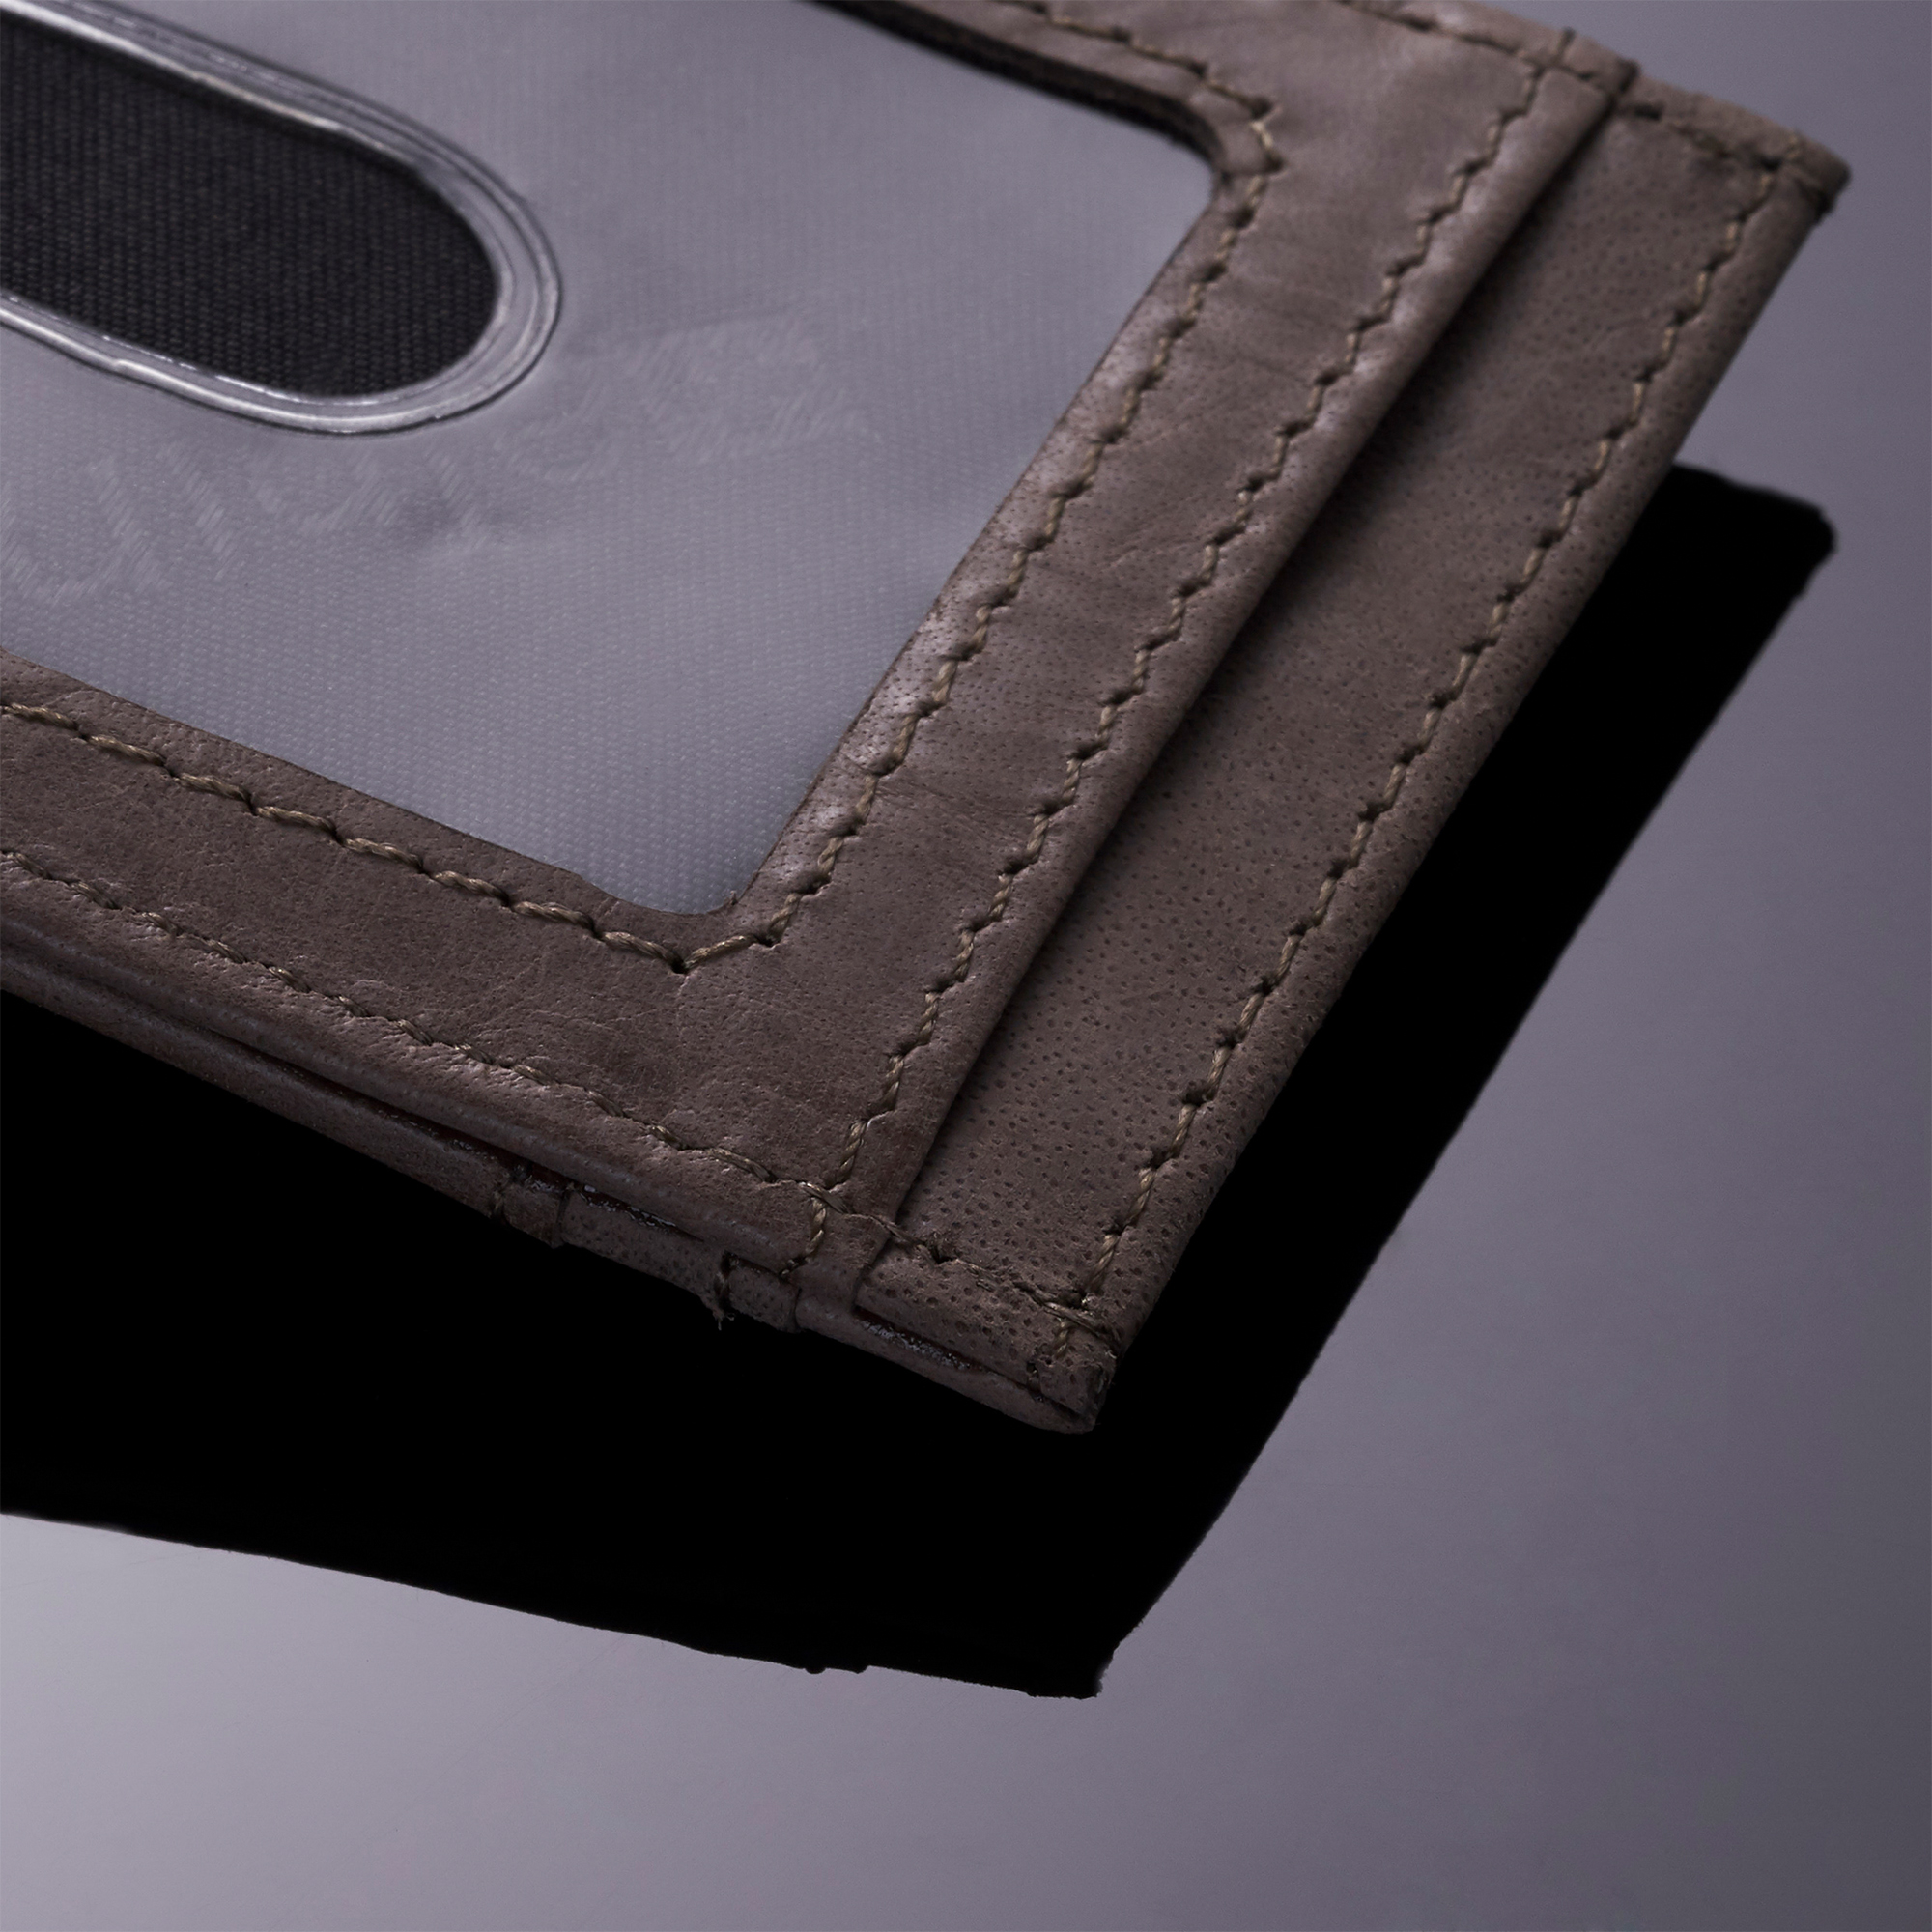 AlpineSwiss-Mens-Leather-Money-Clip-Magnet-Front-Pocket-Wallet-Slim-ID-Card-Case thumbnail 11